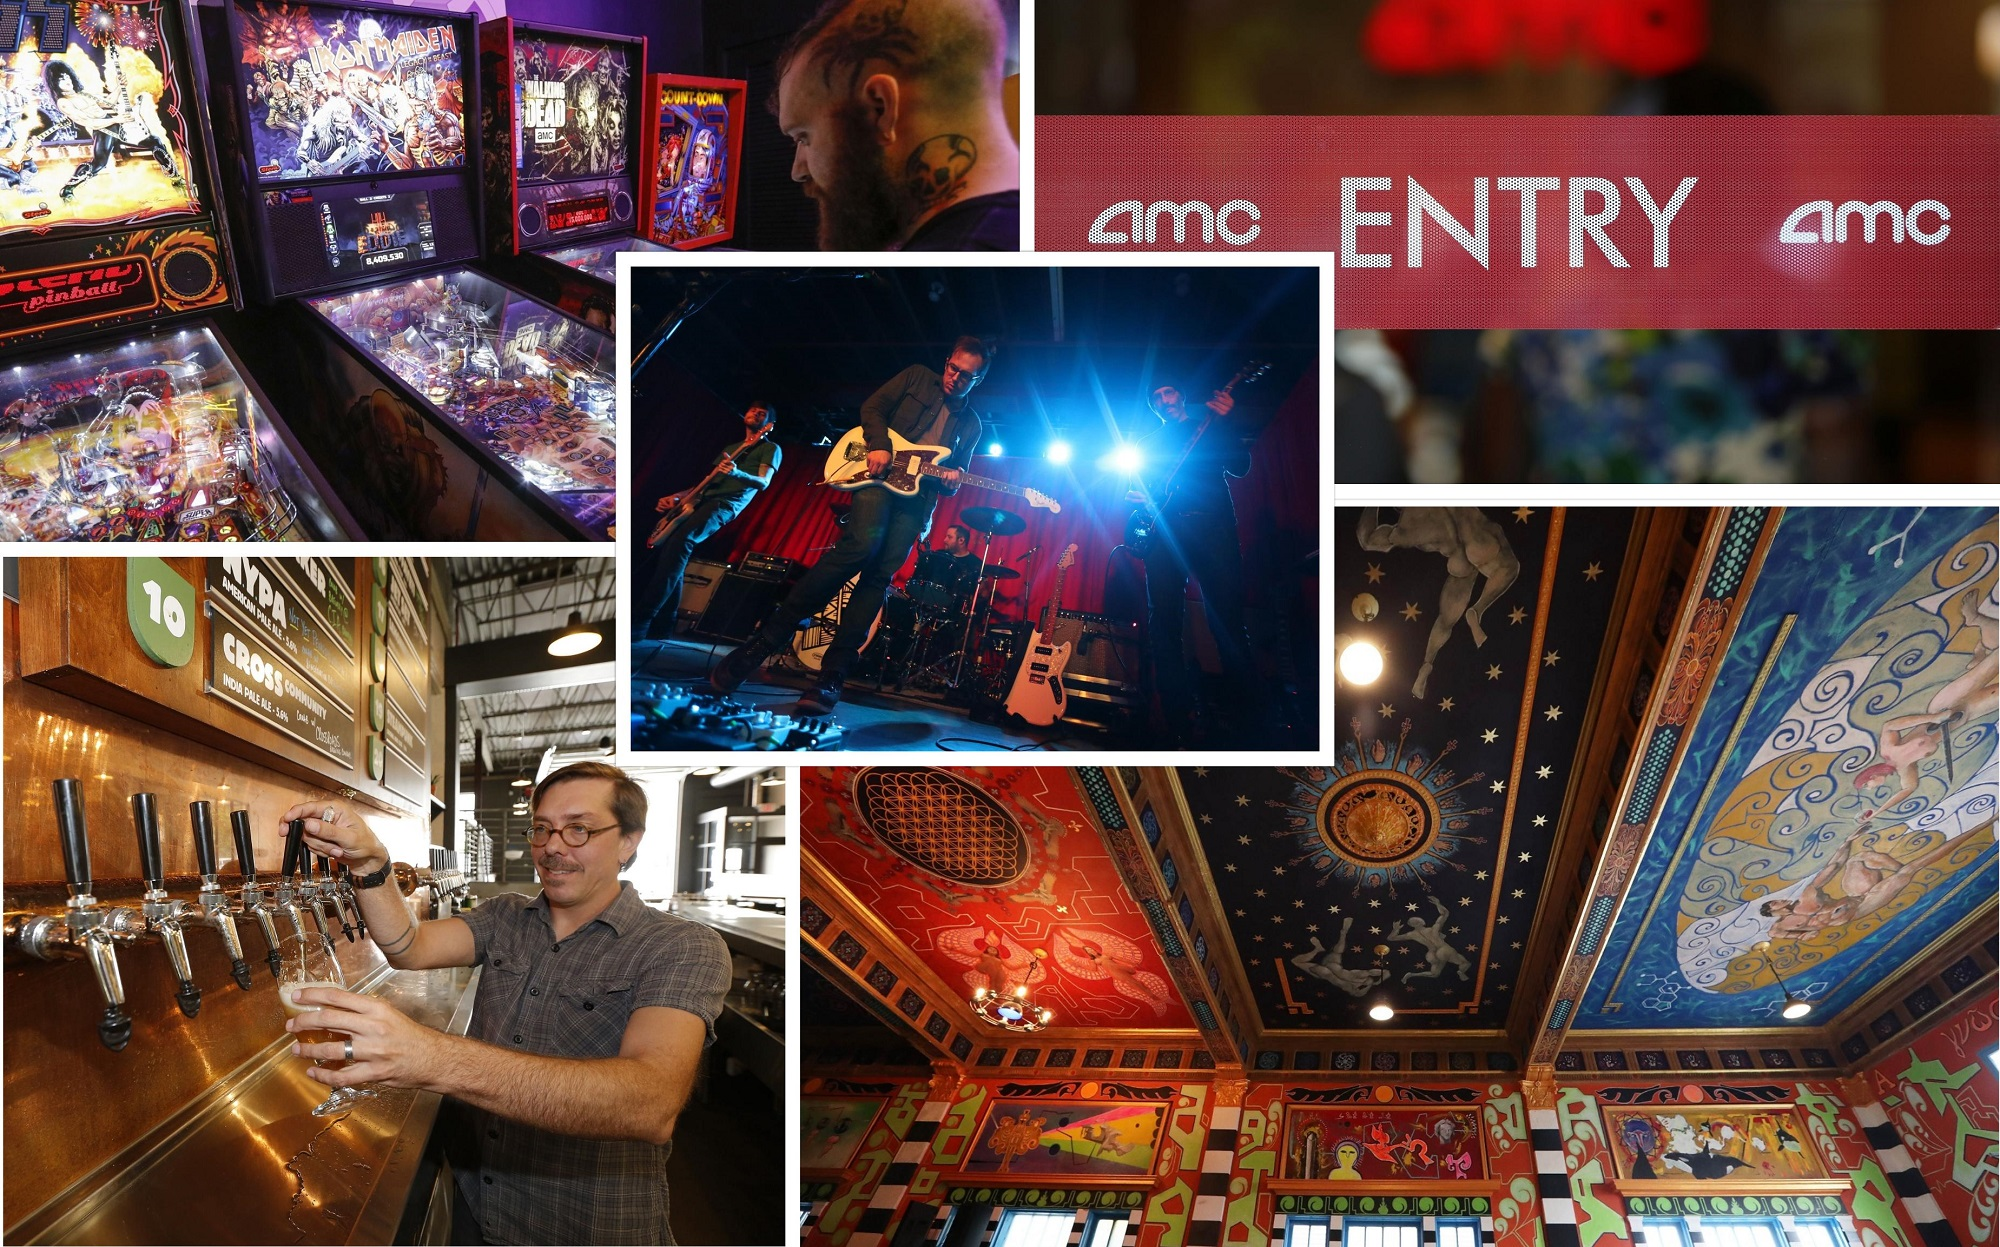 Buffalo's expats have a wealth of new places to check out when returning for the holidays. From upper left, clockwise: Misuta Chow's, AMC Market Arcade, The Tabernacle at Sweet_ness7 and Community Beer Works. Middle is Restorations performing in new Buffalo concert venue Rec Room. (News file photos)